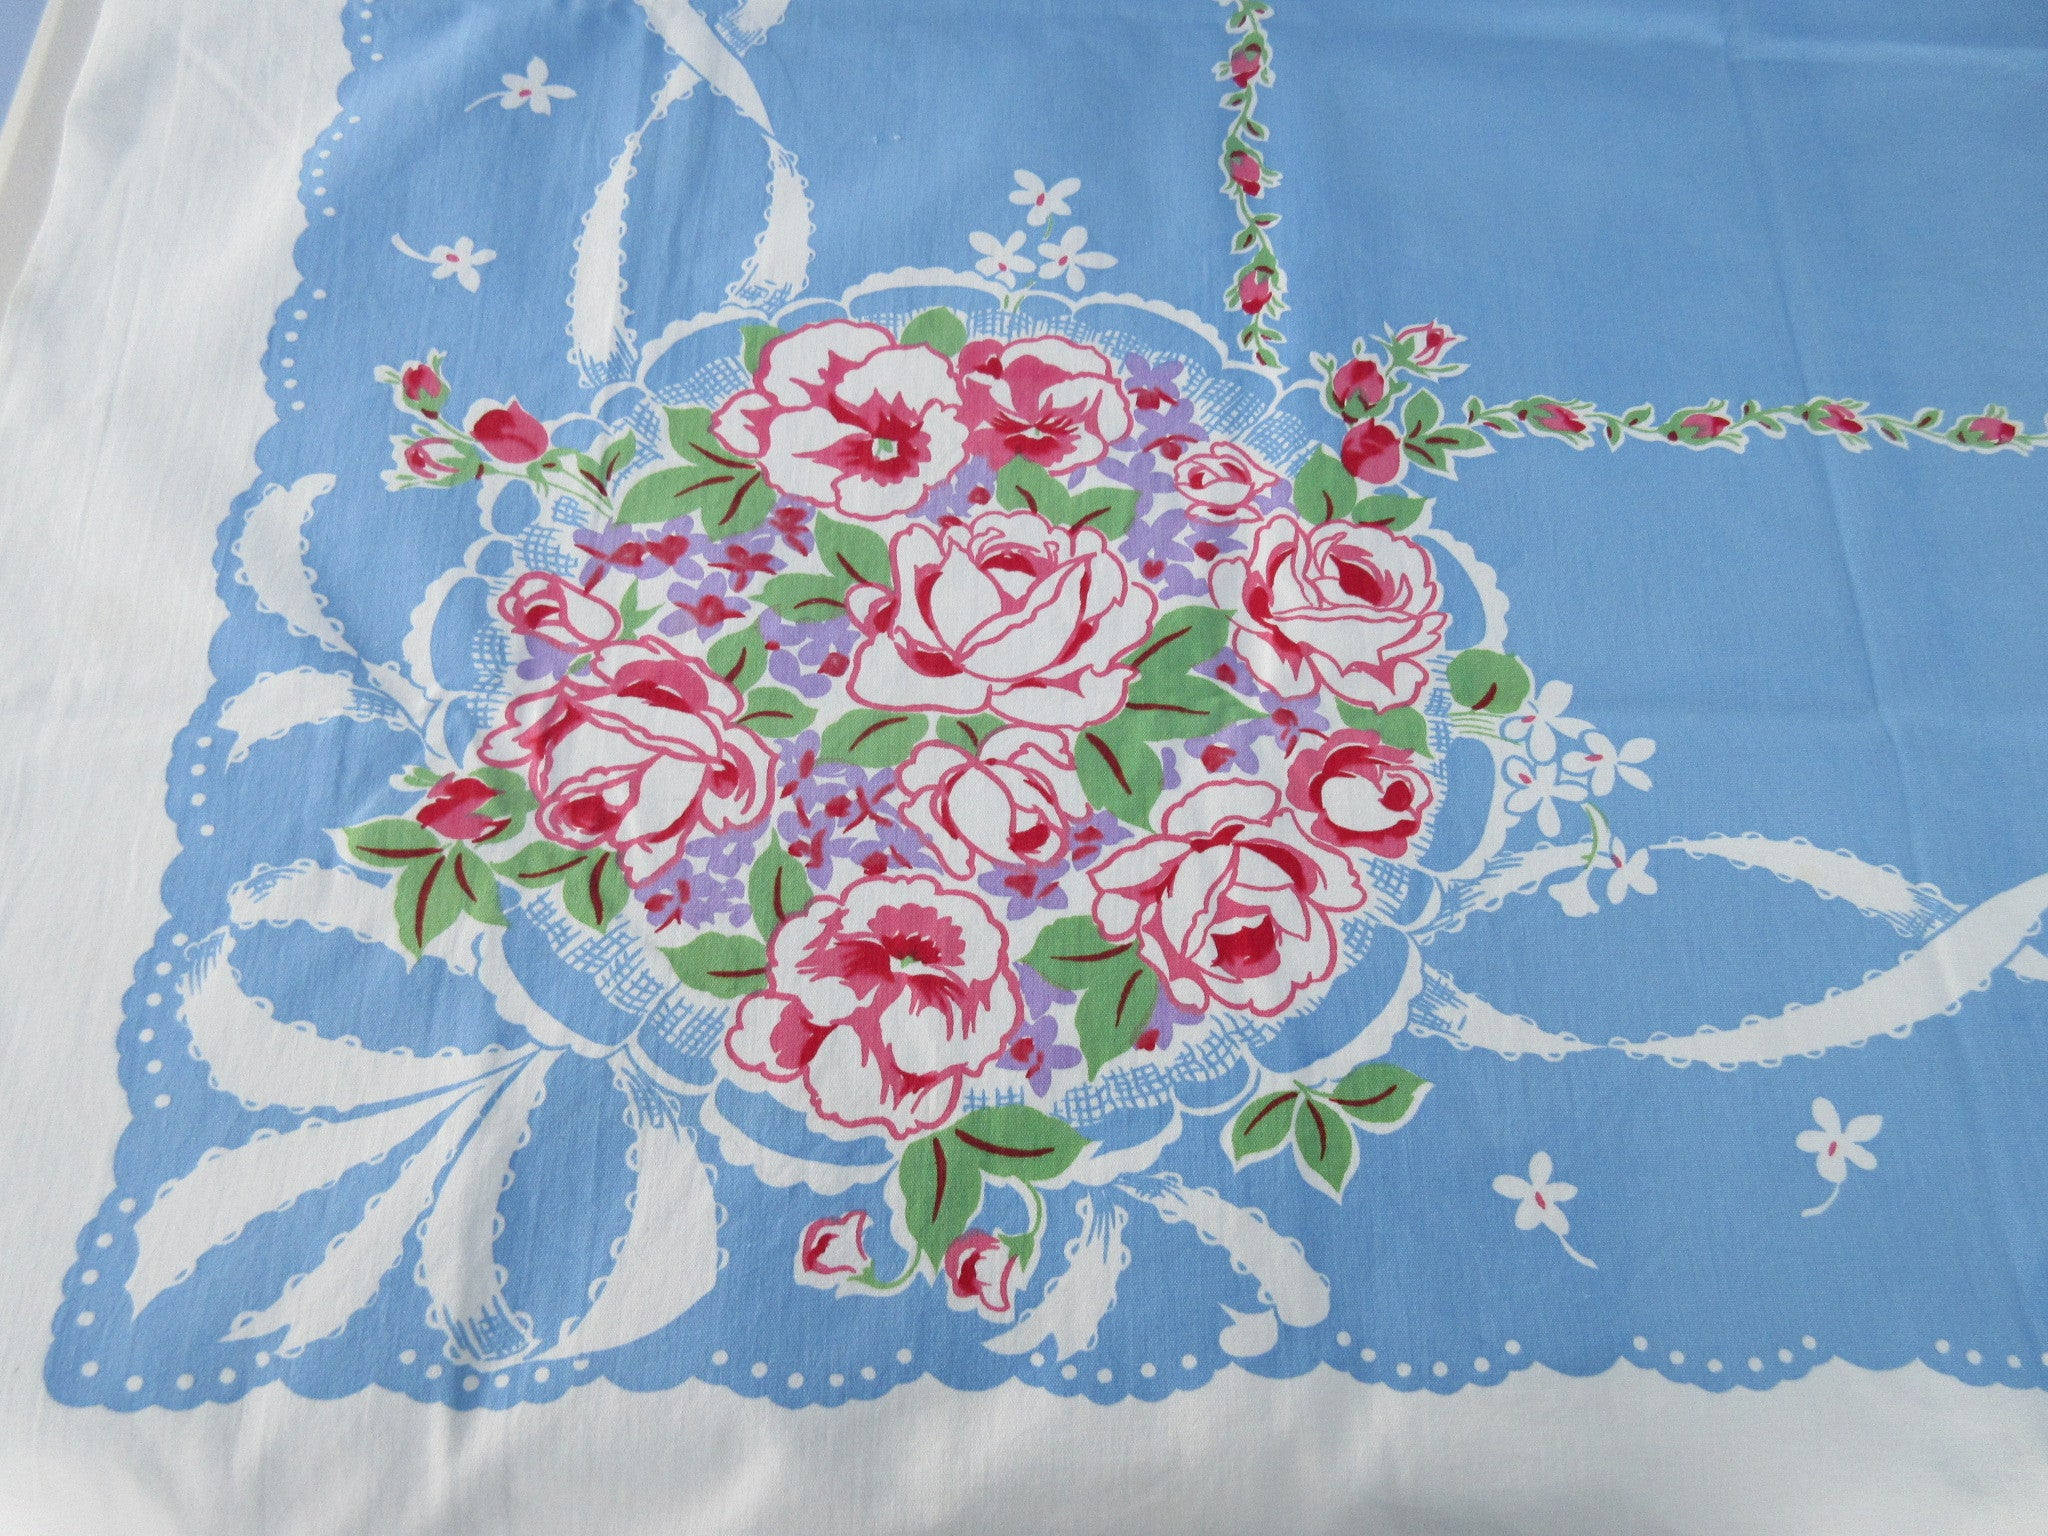 Imperfect Pink Green Roses on Blue Heavy Floral Vintage Printed Tablecloth (50 X 45)